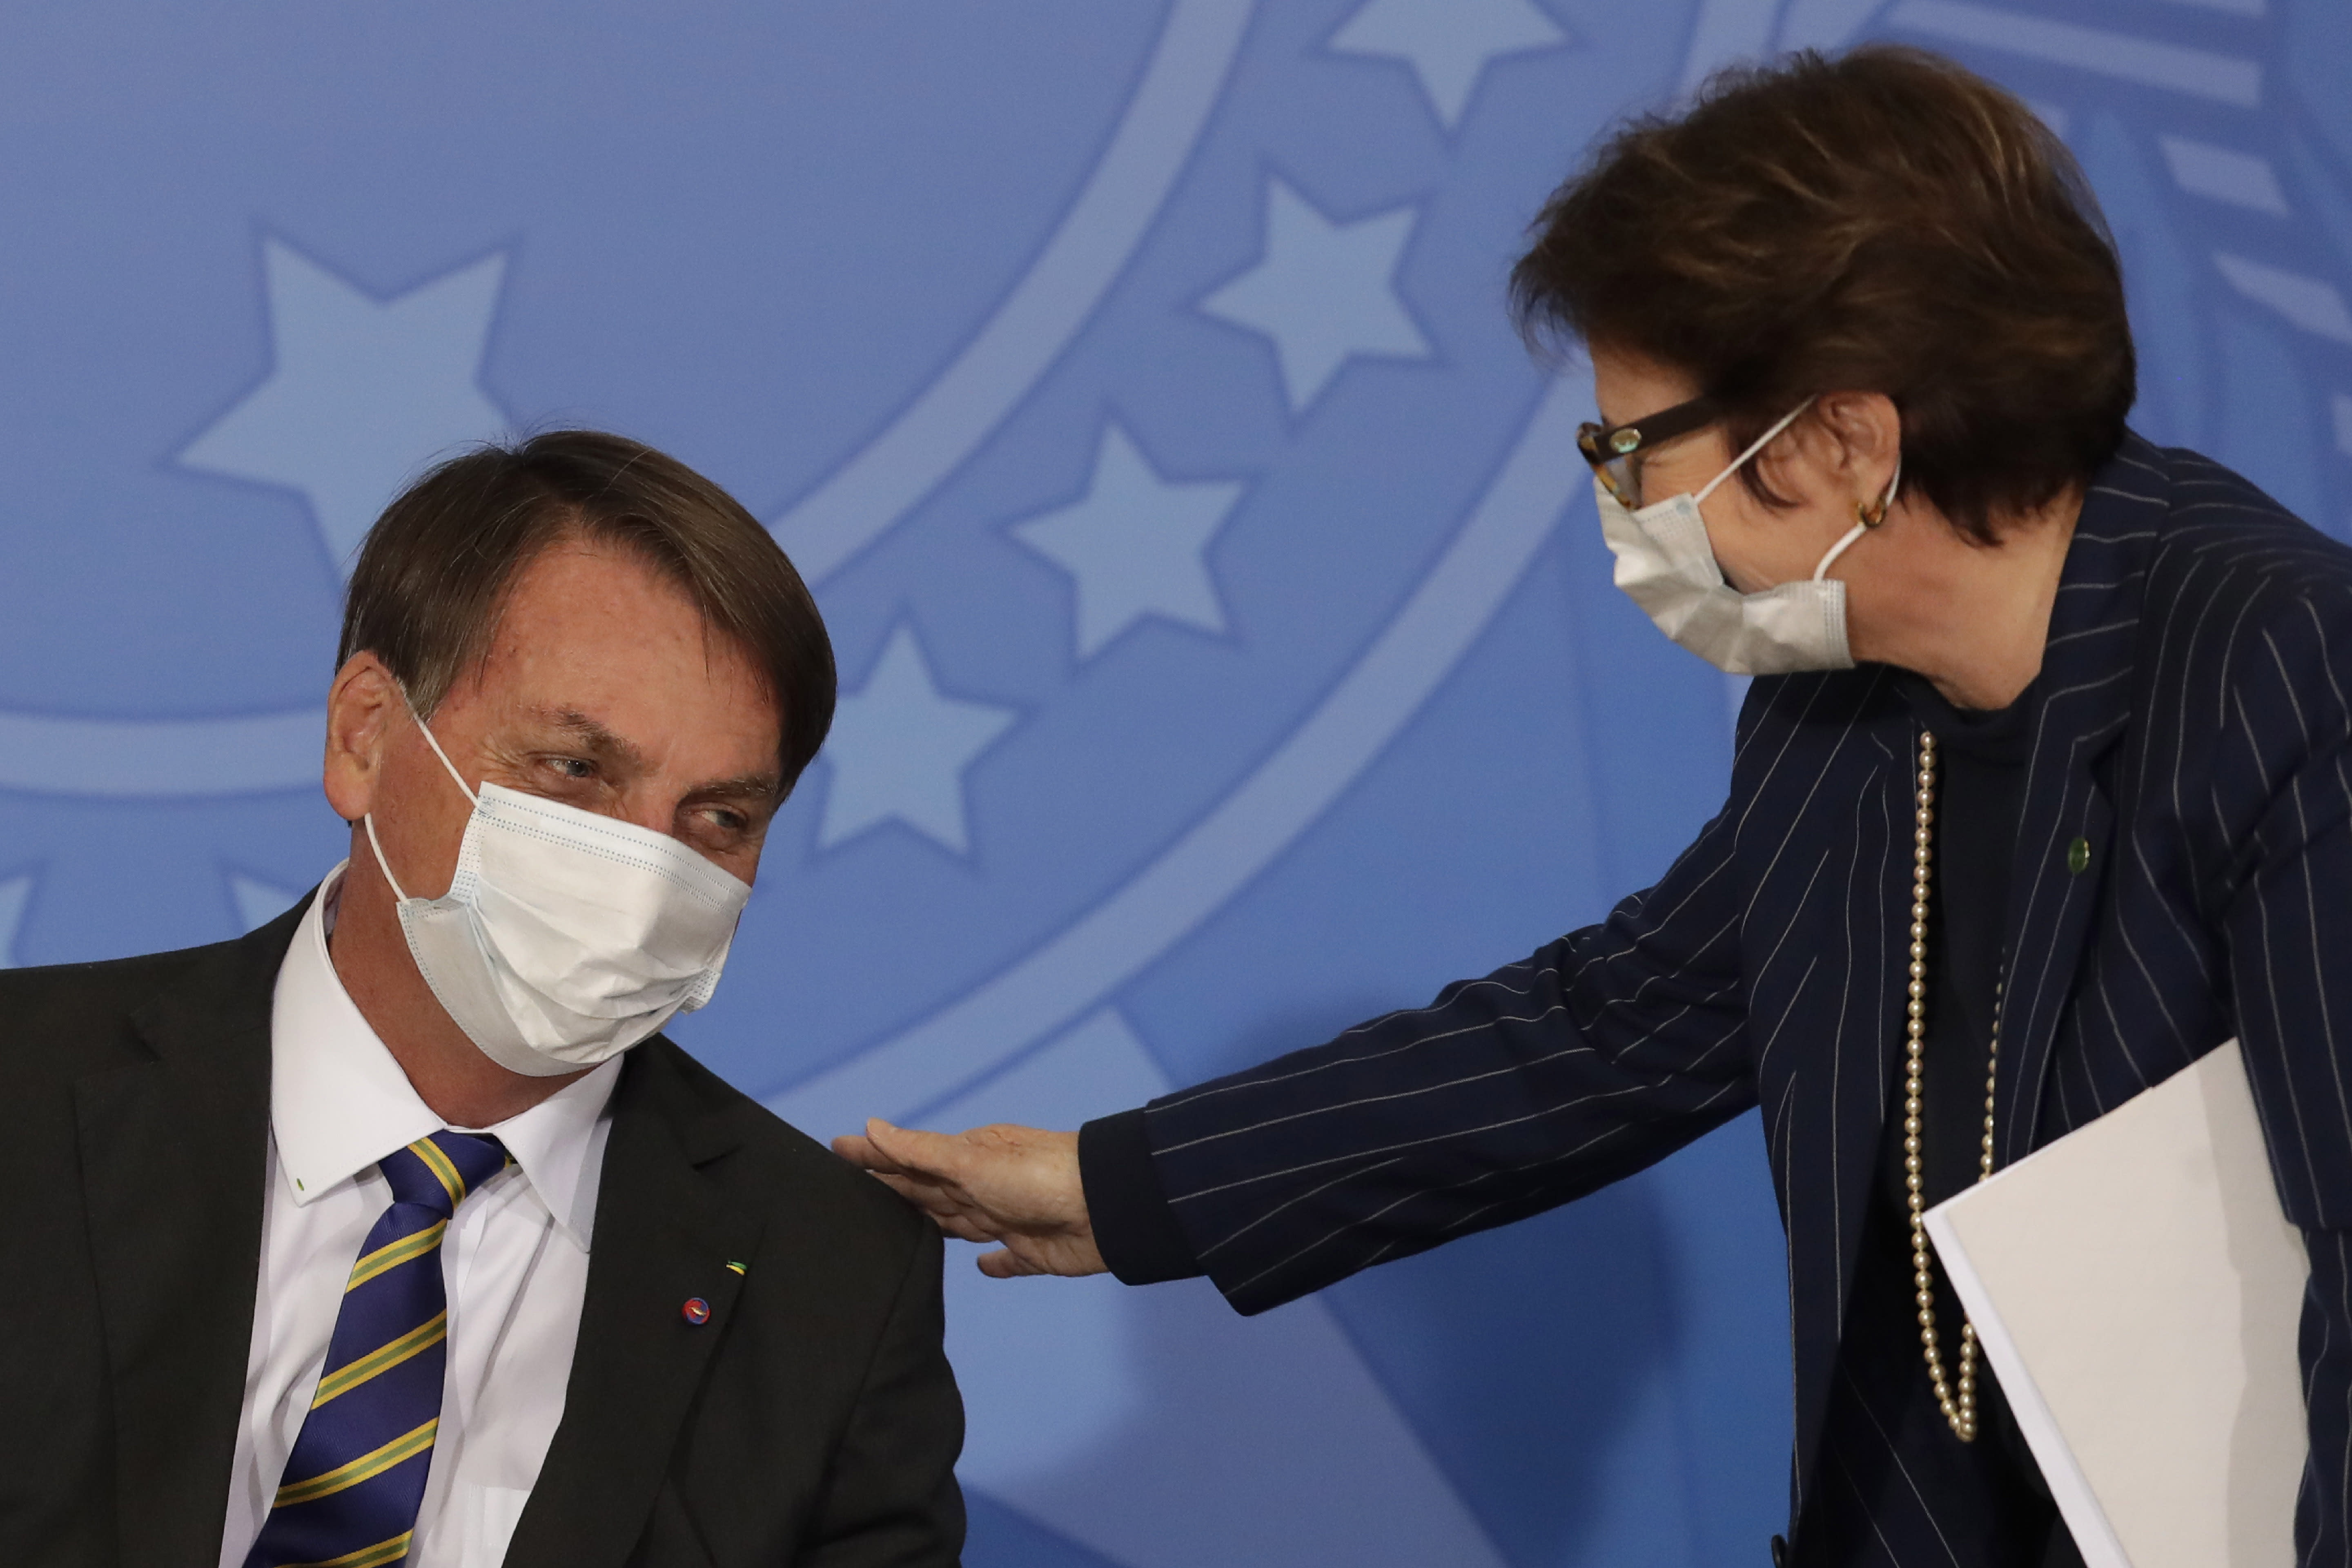 Brazil's President Jair Bolsonaro wearing a protective mask to curb the spread of the new coronavirus, left, talks with Agriculture Minister Tereza Cristina during the launching ceremony of a rights guarantee program for rural women, at the Planalto Presidential Palace in Brasilia, Brazil, Wednesday, July 29, 2020. (AP Photo/Eraldo Peres)